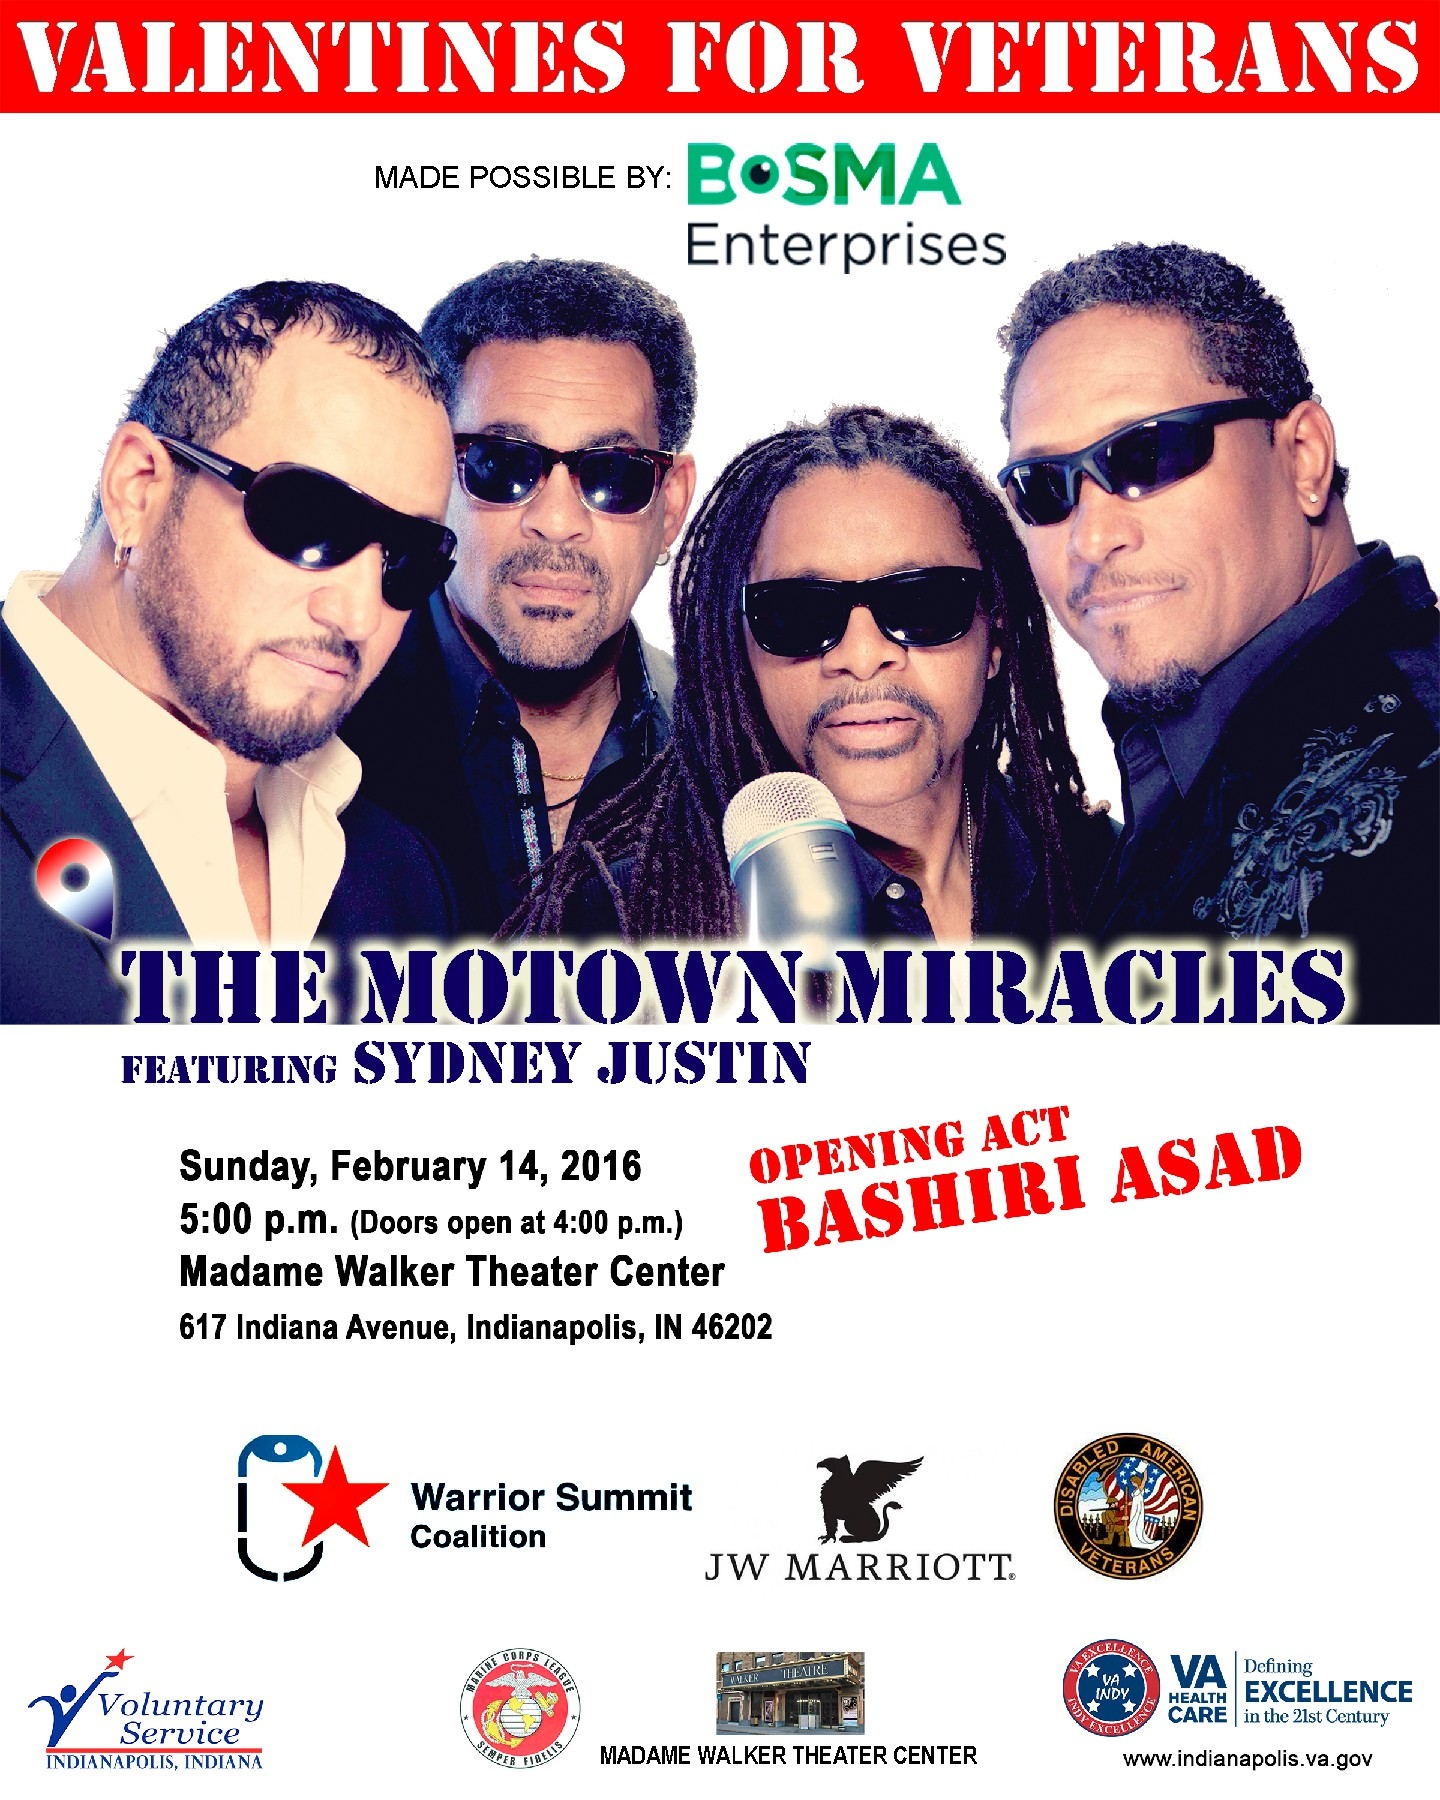 Valentines For Veterans, Miracles for Heroes Concert- The Motown Miracles Featuring Sydney Justin